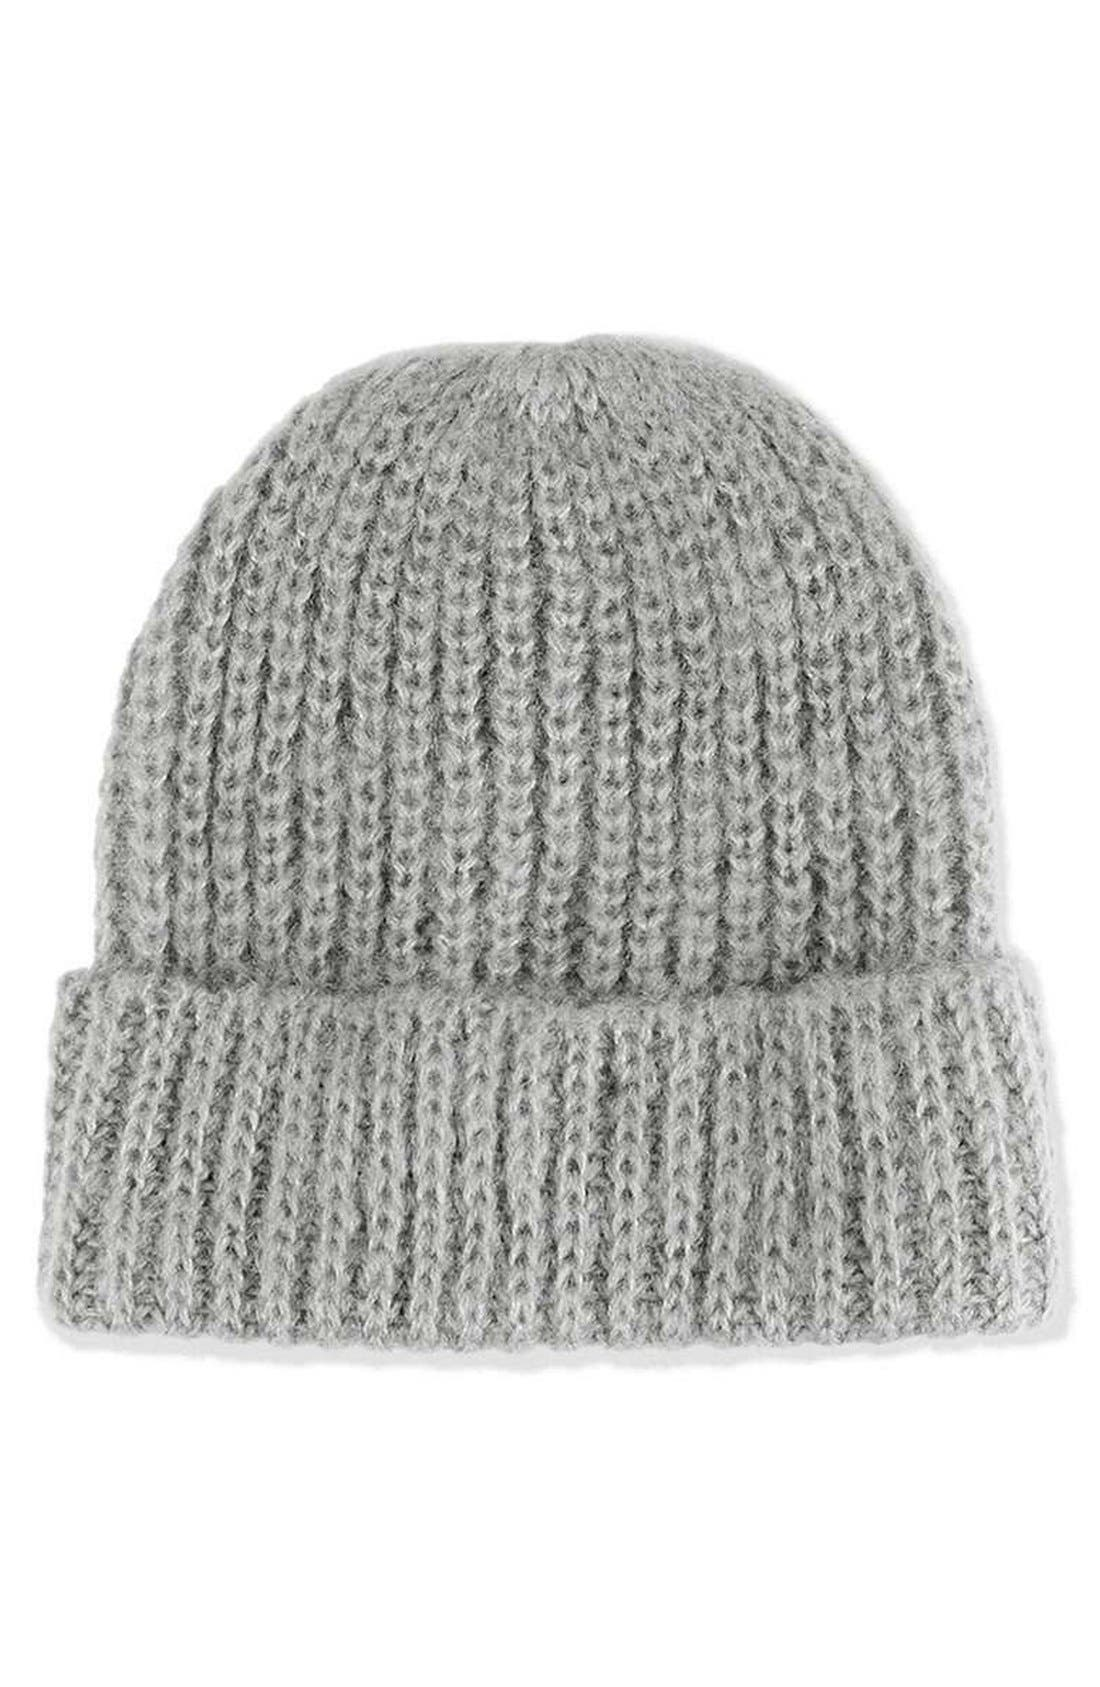 Alternate Image 1 Selected - Topshop Knit Beanie